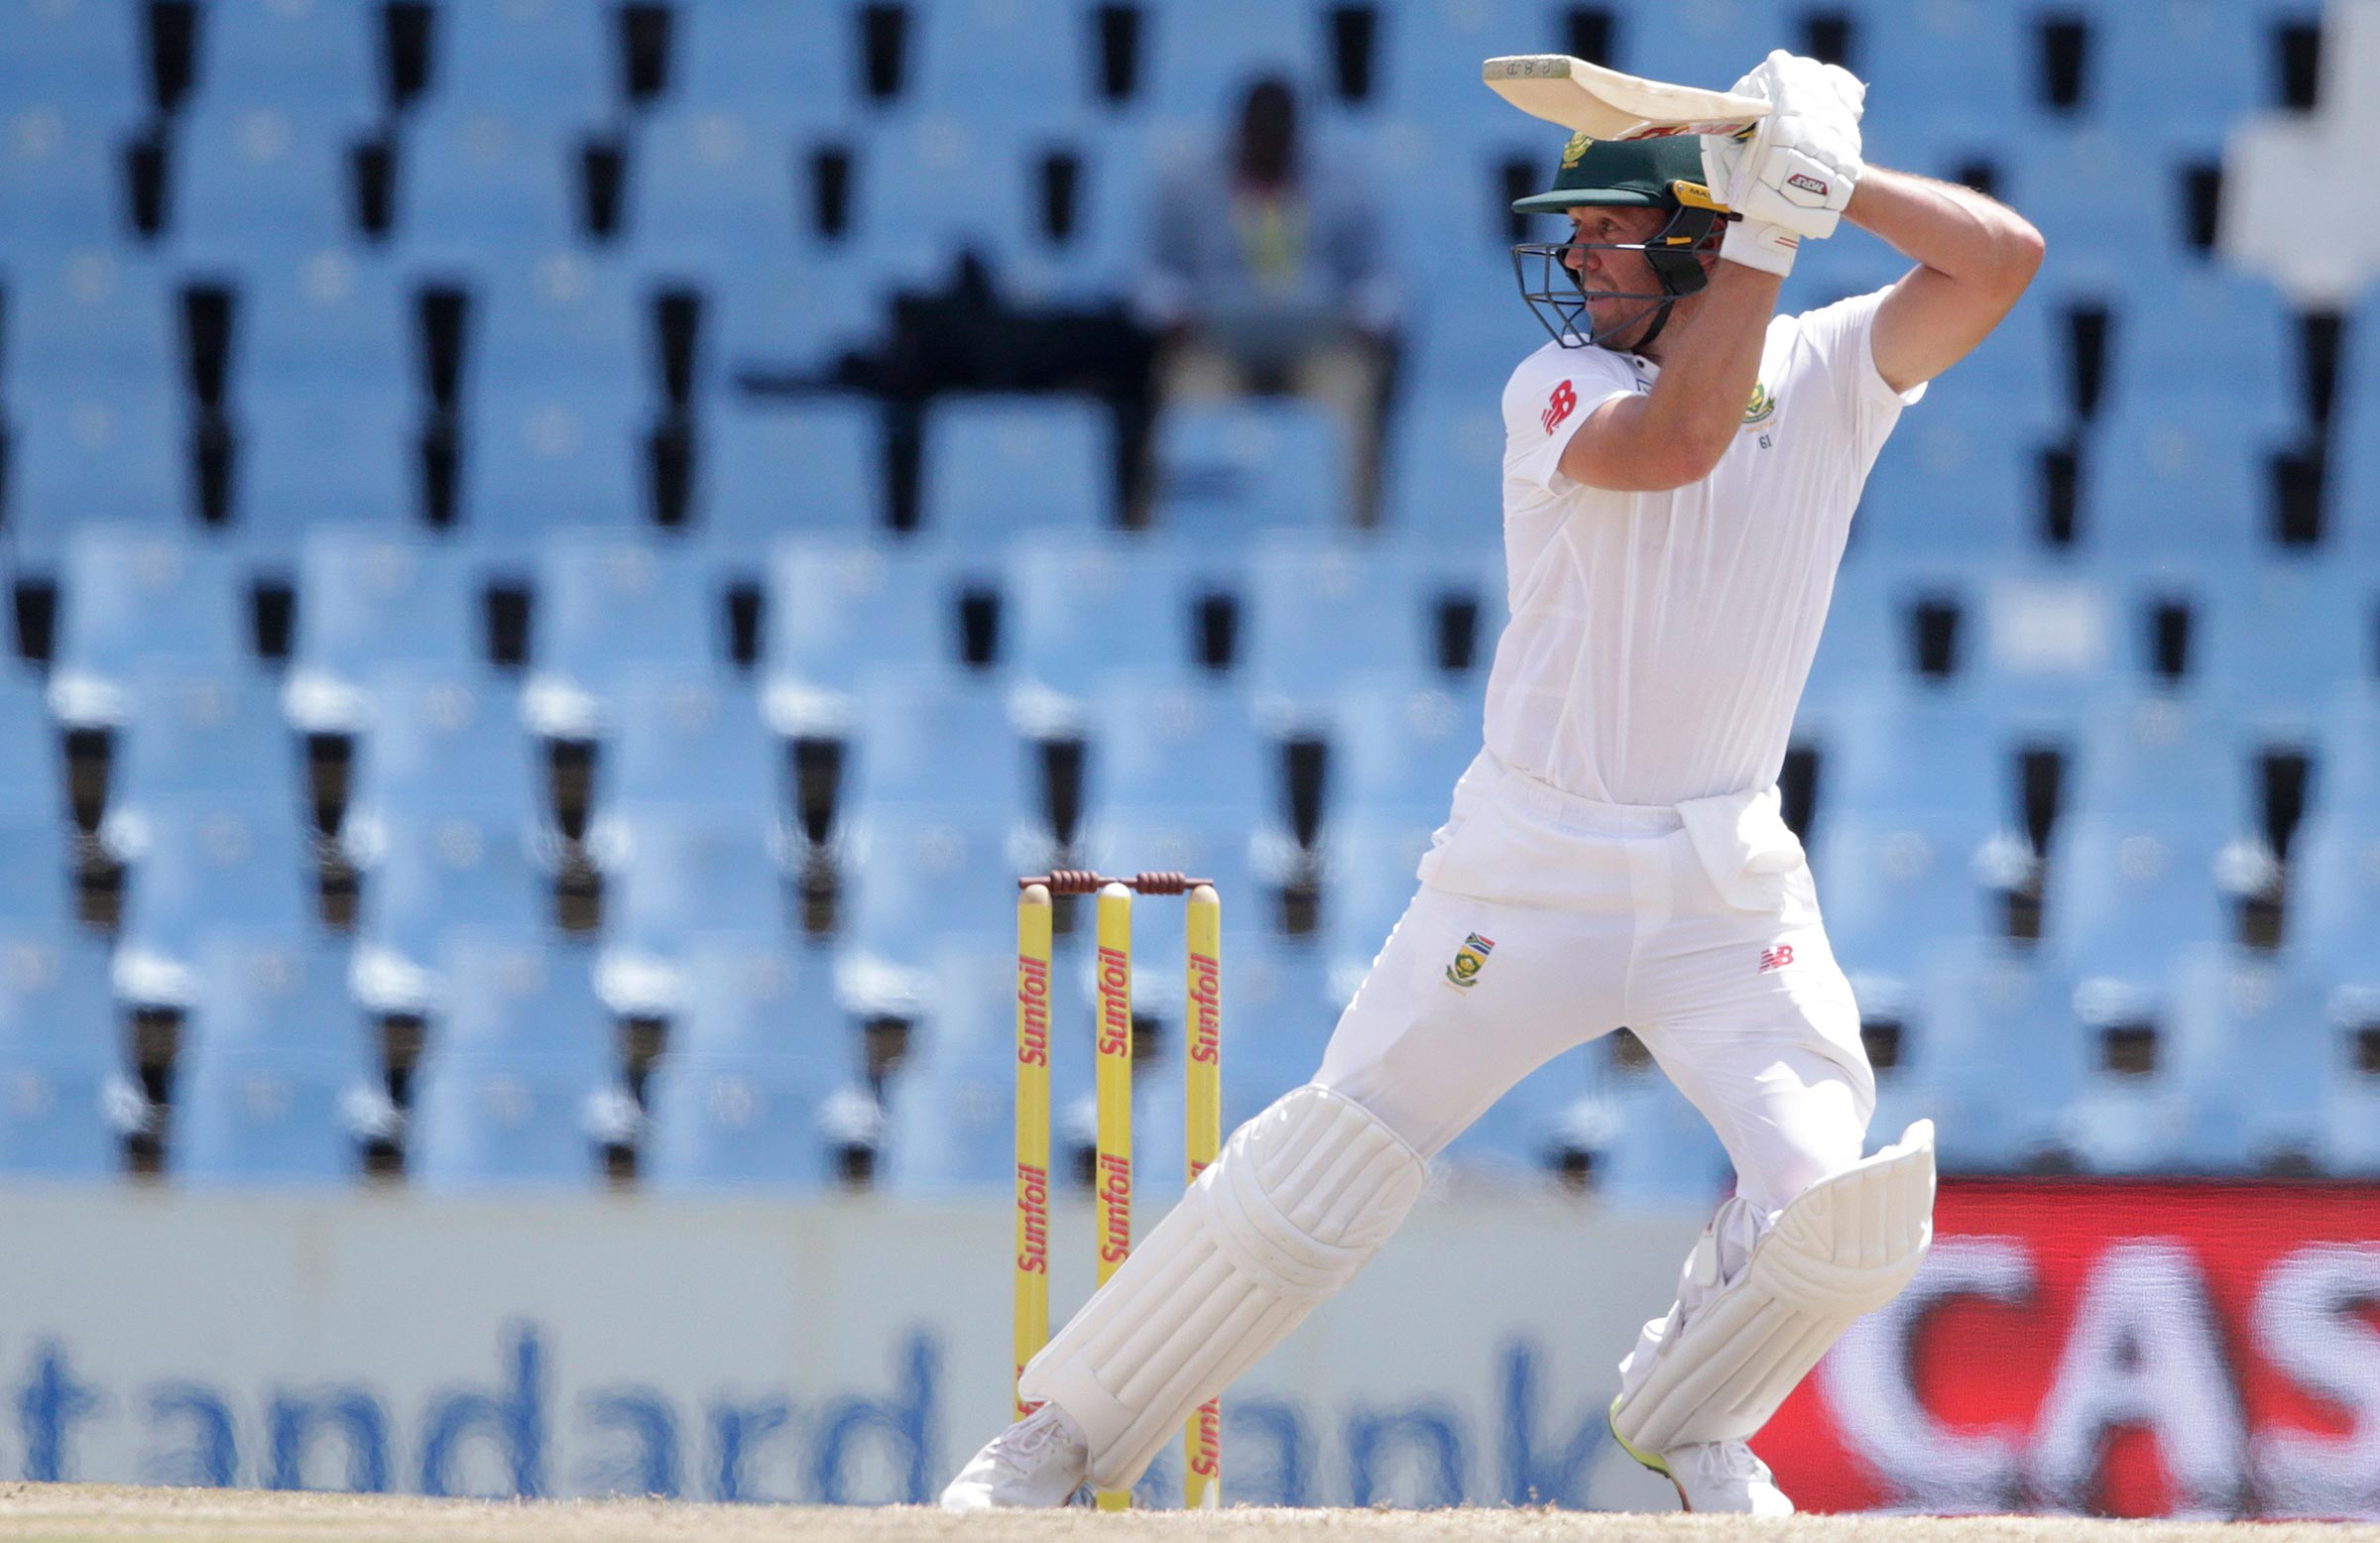 De Villiers in action on his way to 80 // Getty